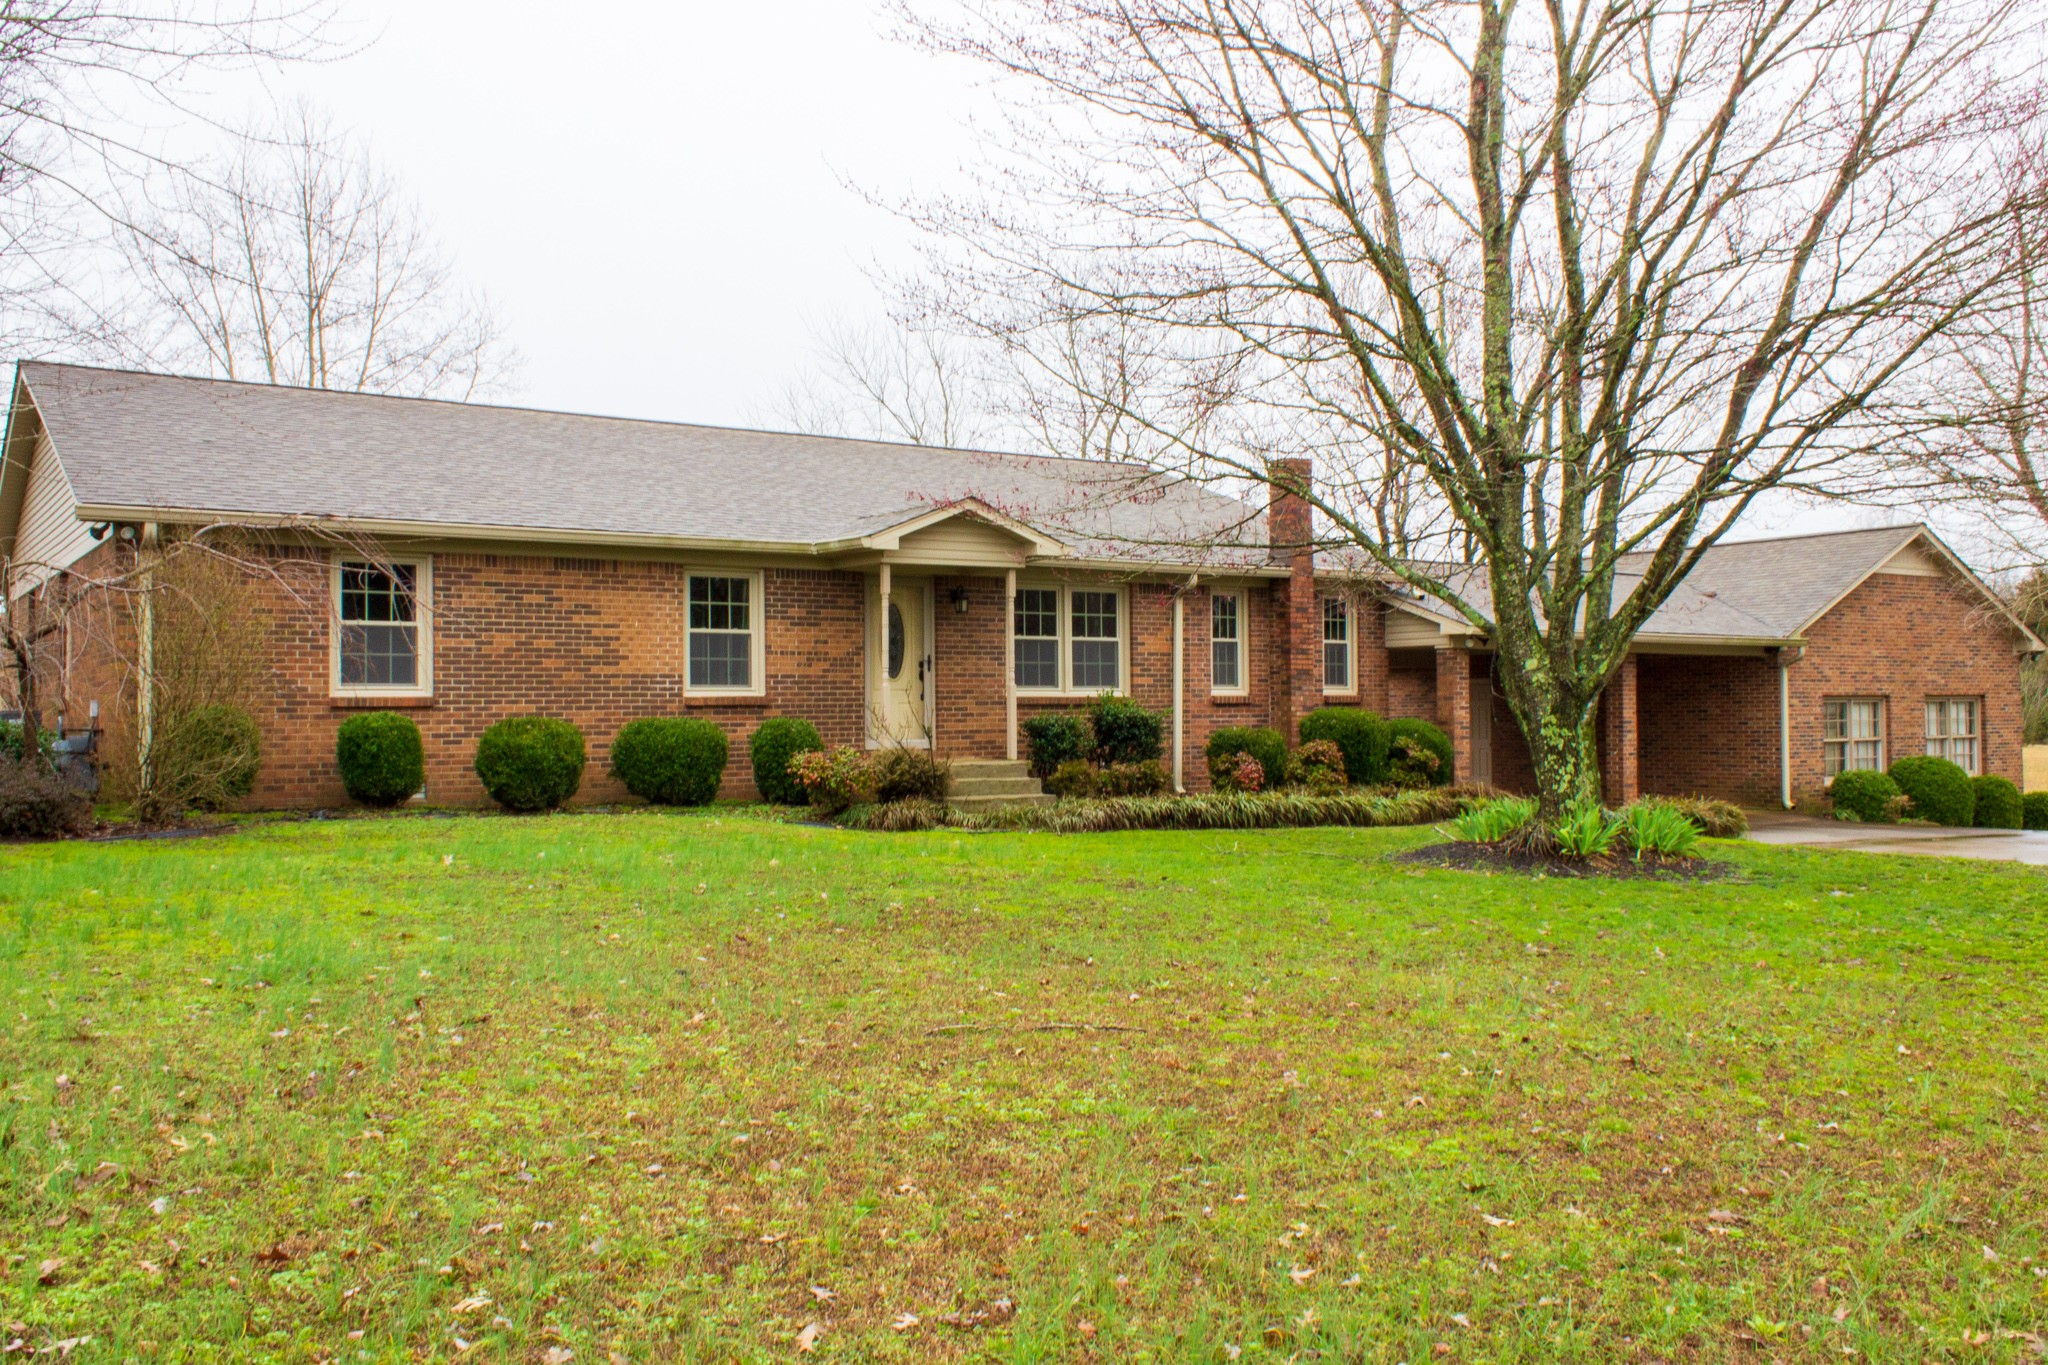 98 Breeden Rd, New Johnsonville, TN 37134 - New Johnsonville, TN real estate listing